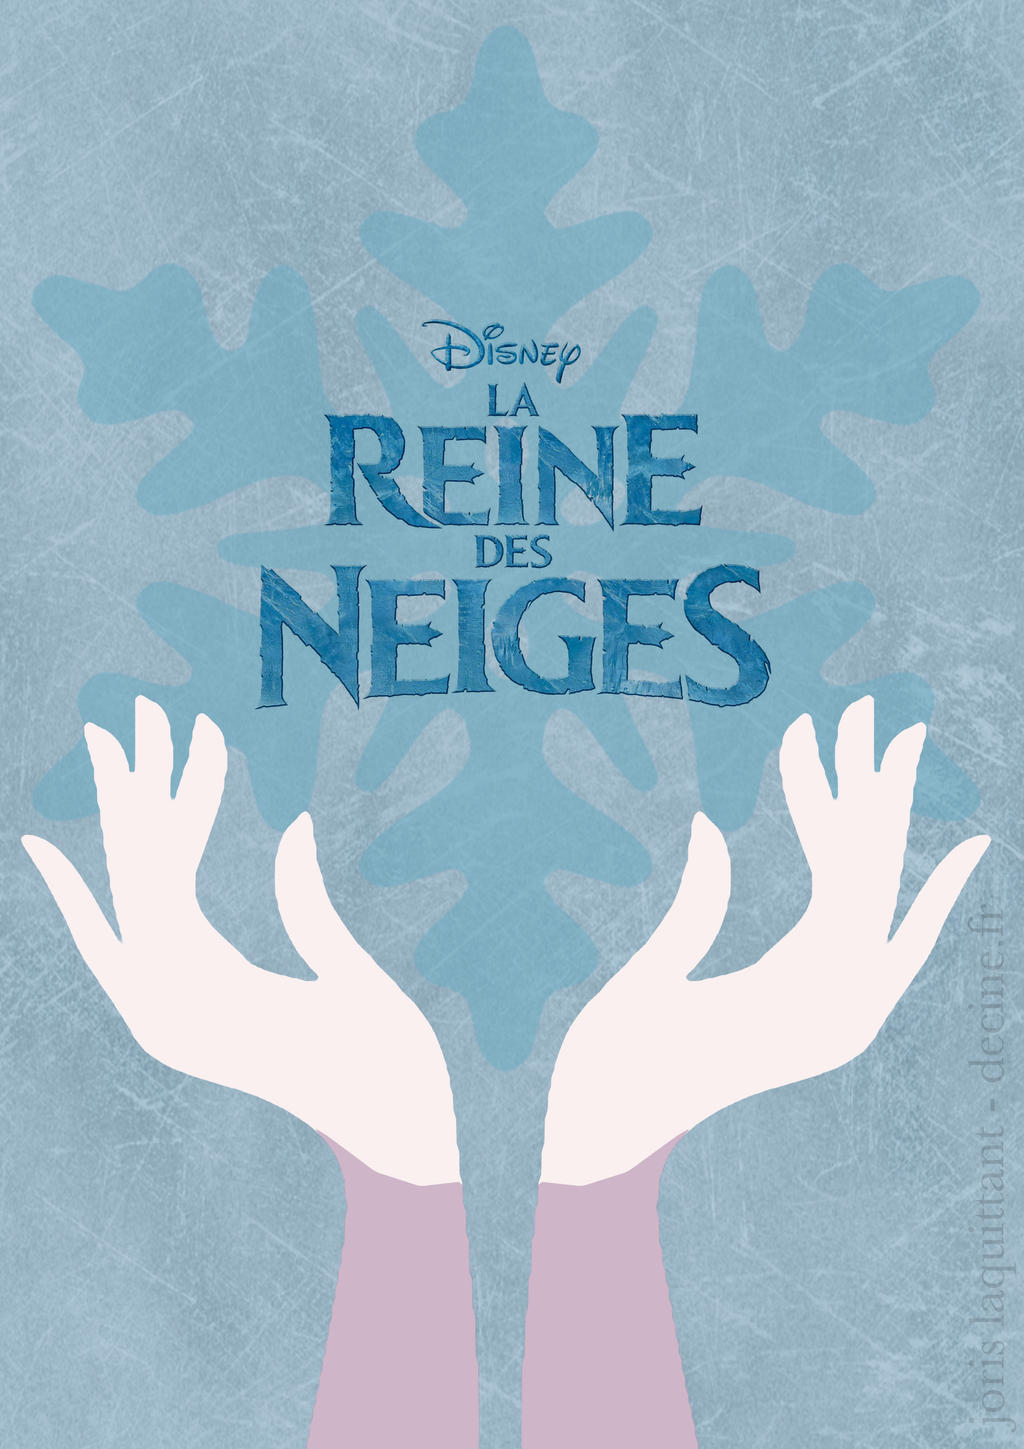 La reine des neiges affiche minimaliste by for Affiche minimaliste